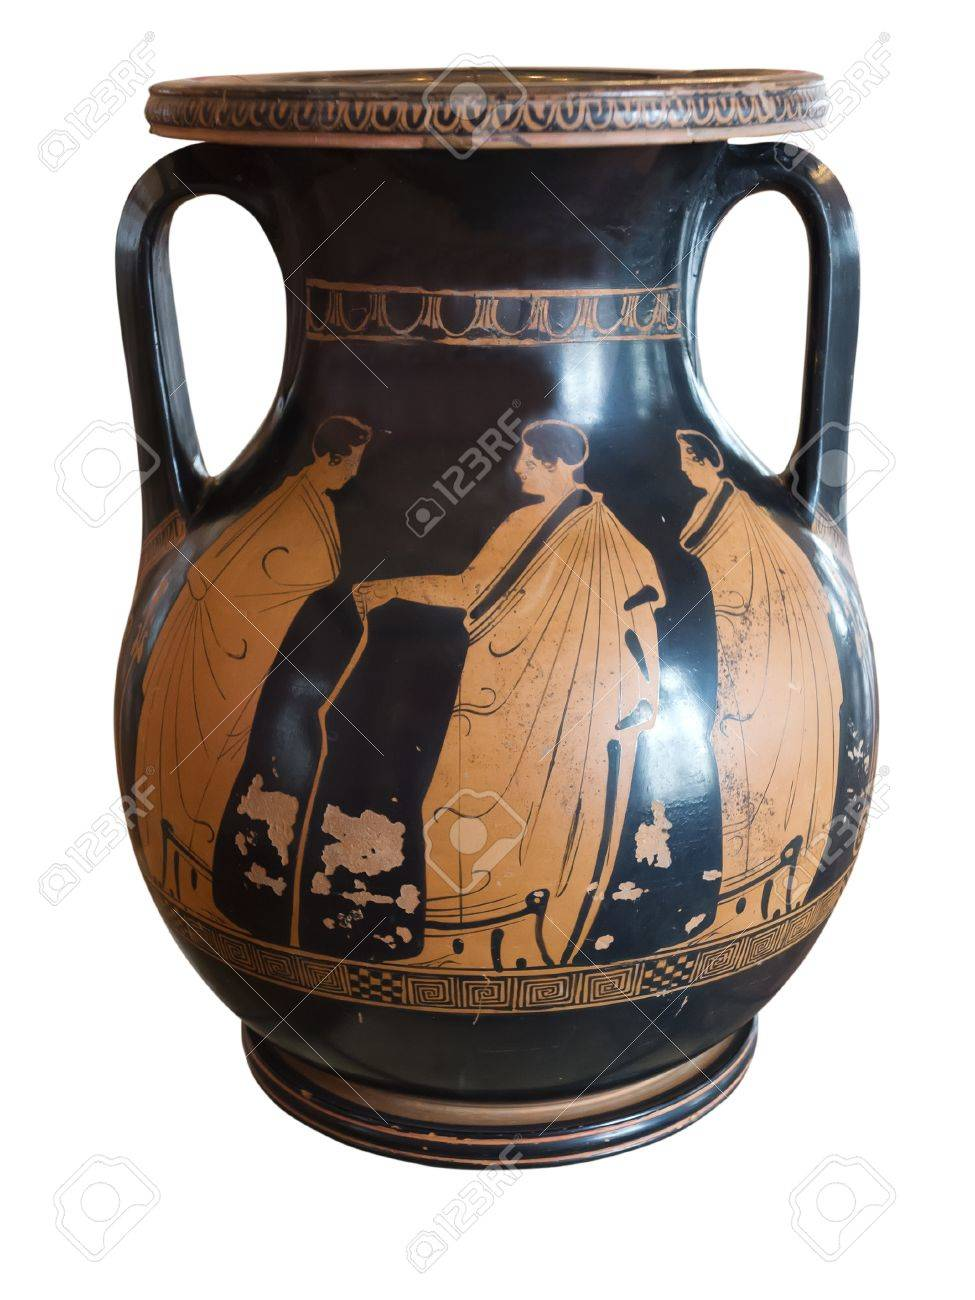 Ancient greek vase exposed in a museum stock photo picture and ancient greek vase exposed in a museum stock photo 20962995 reviewsmspy